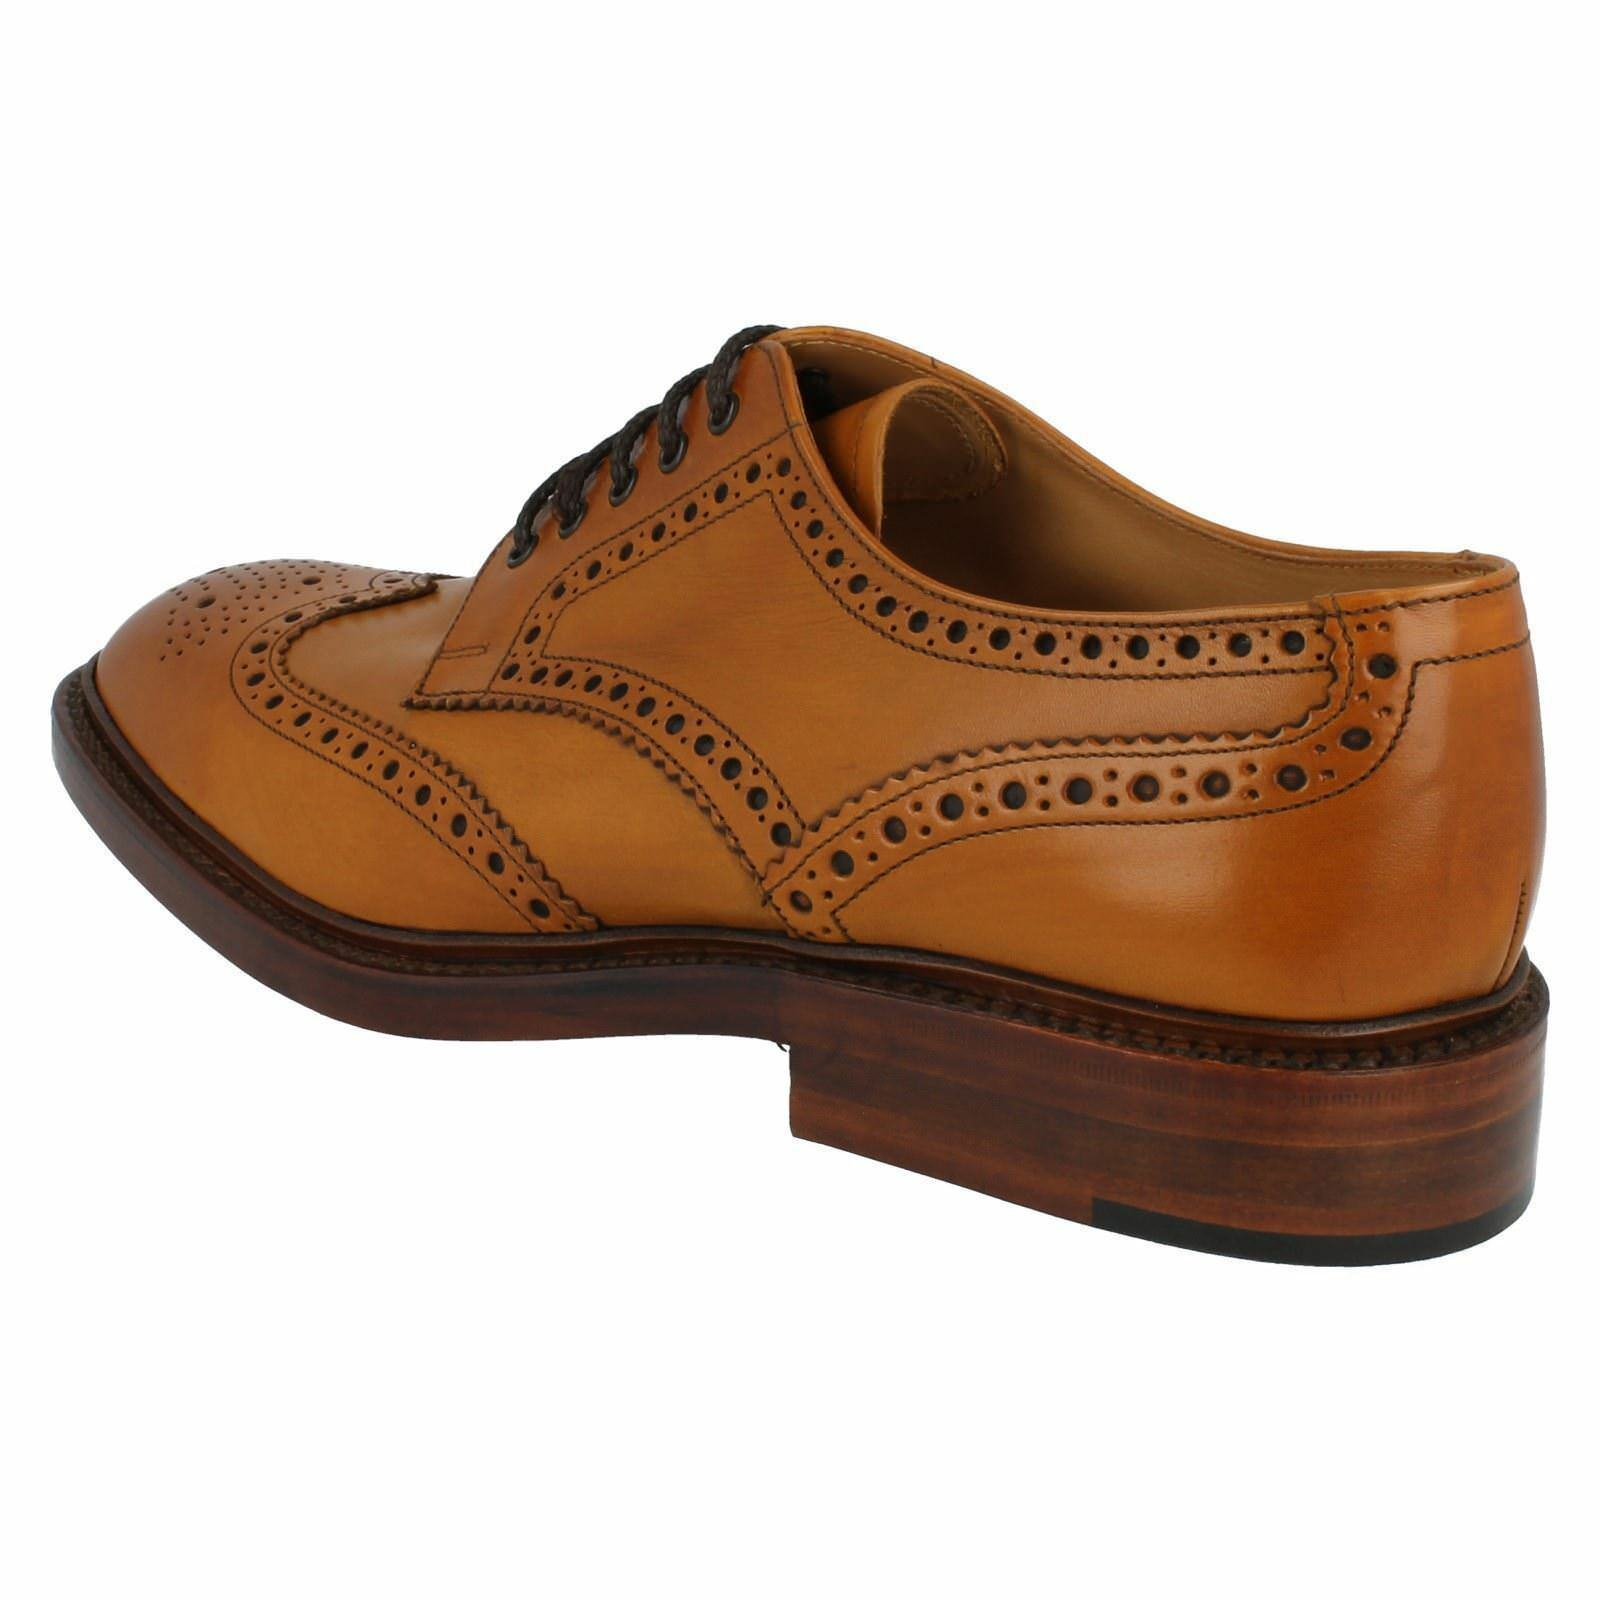 Uomo tan Chester 2 F fit tan Uomo burnished calf Leder lace up brogue by Loake 10b4c9